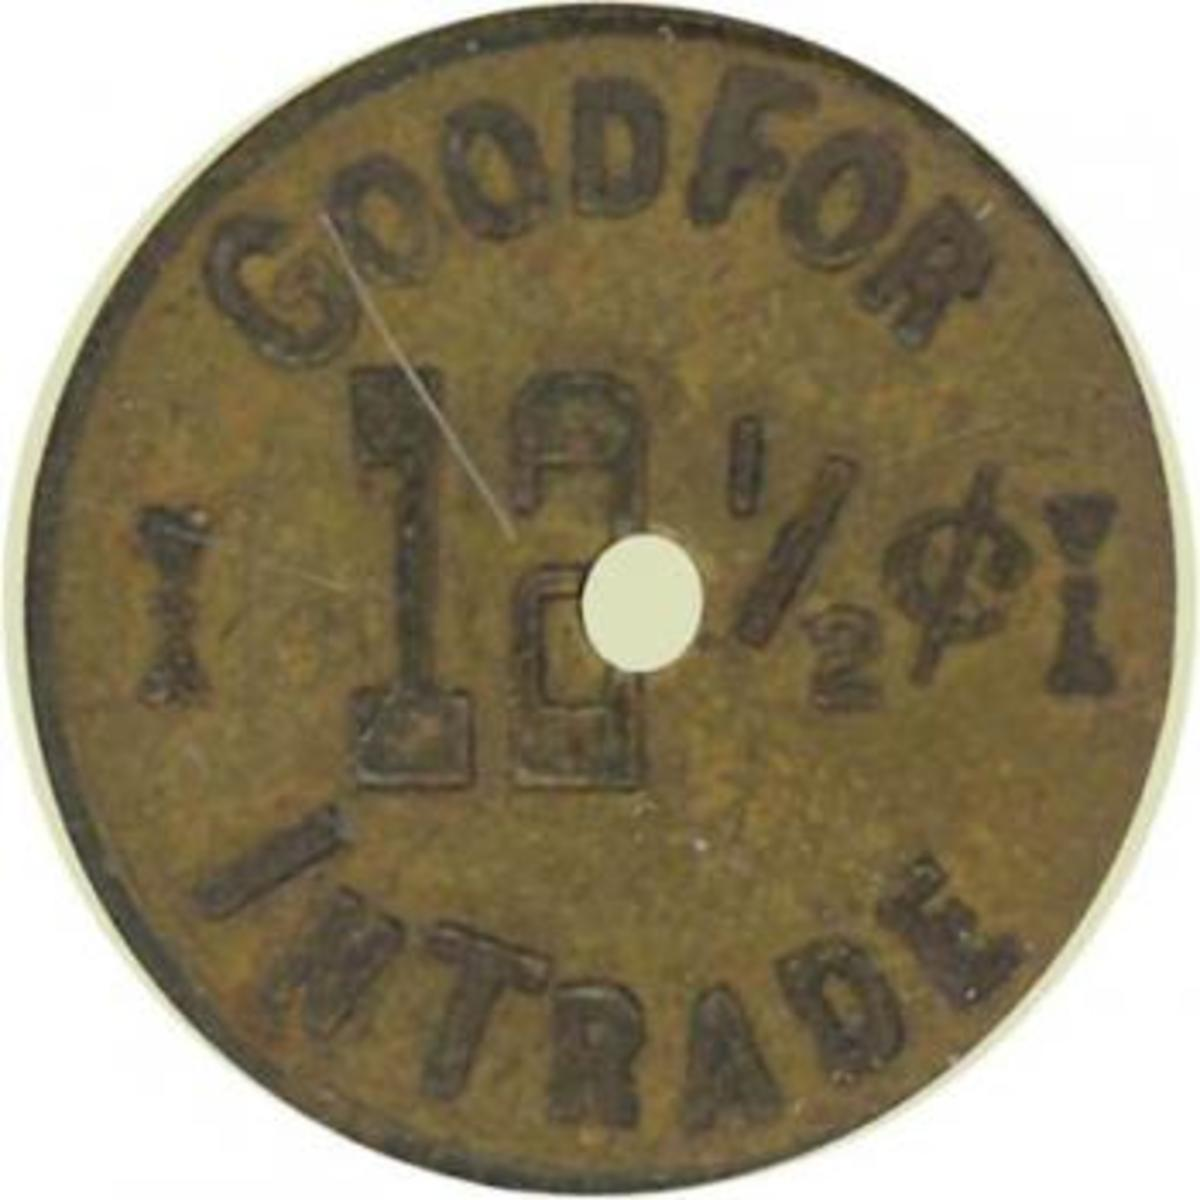 These two images show two sides of a saloon token from Chloride, Arizona, now a ghost town near Kingman. The token has a tender value of 12 1/2 cents, or one bit. Usually, that was worth one drink. Image courtesy Holabird-Kagin Americana, used with p